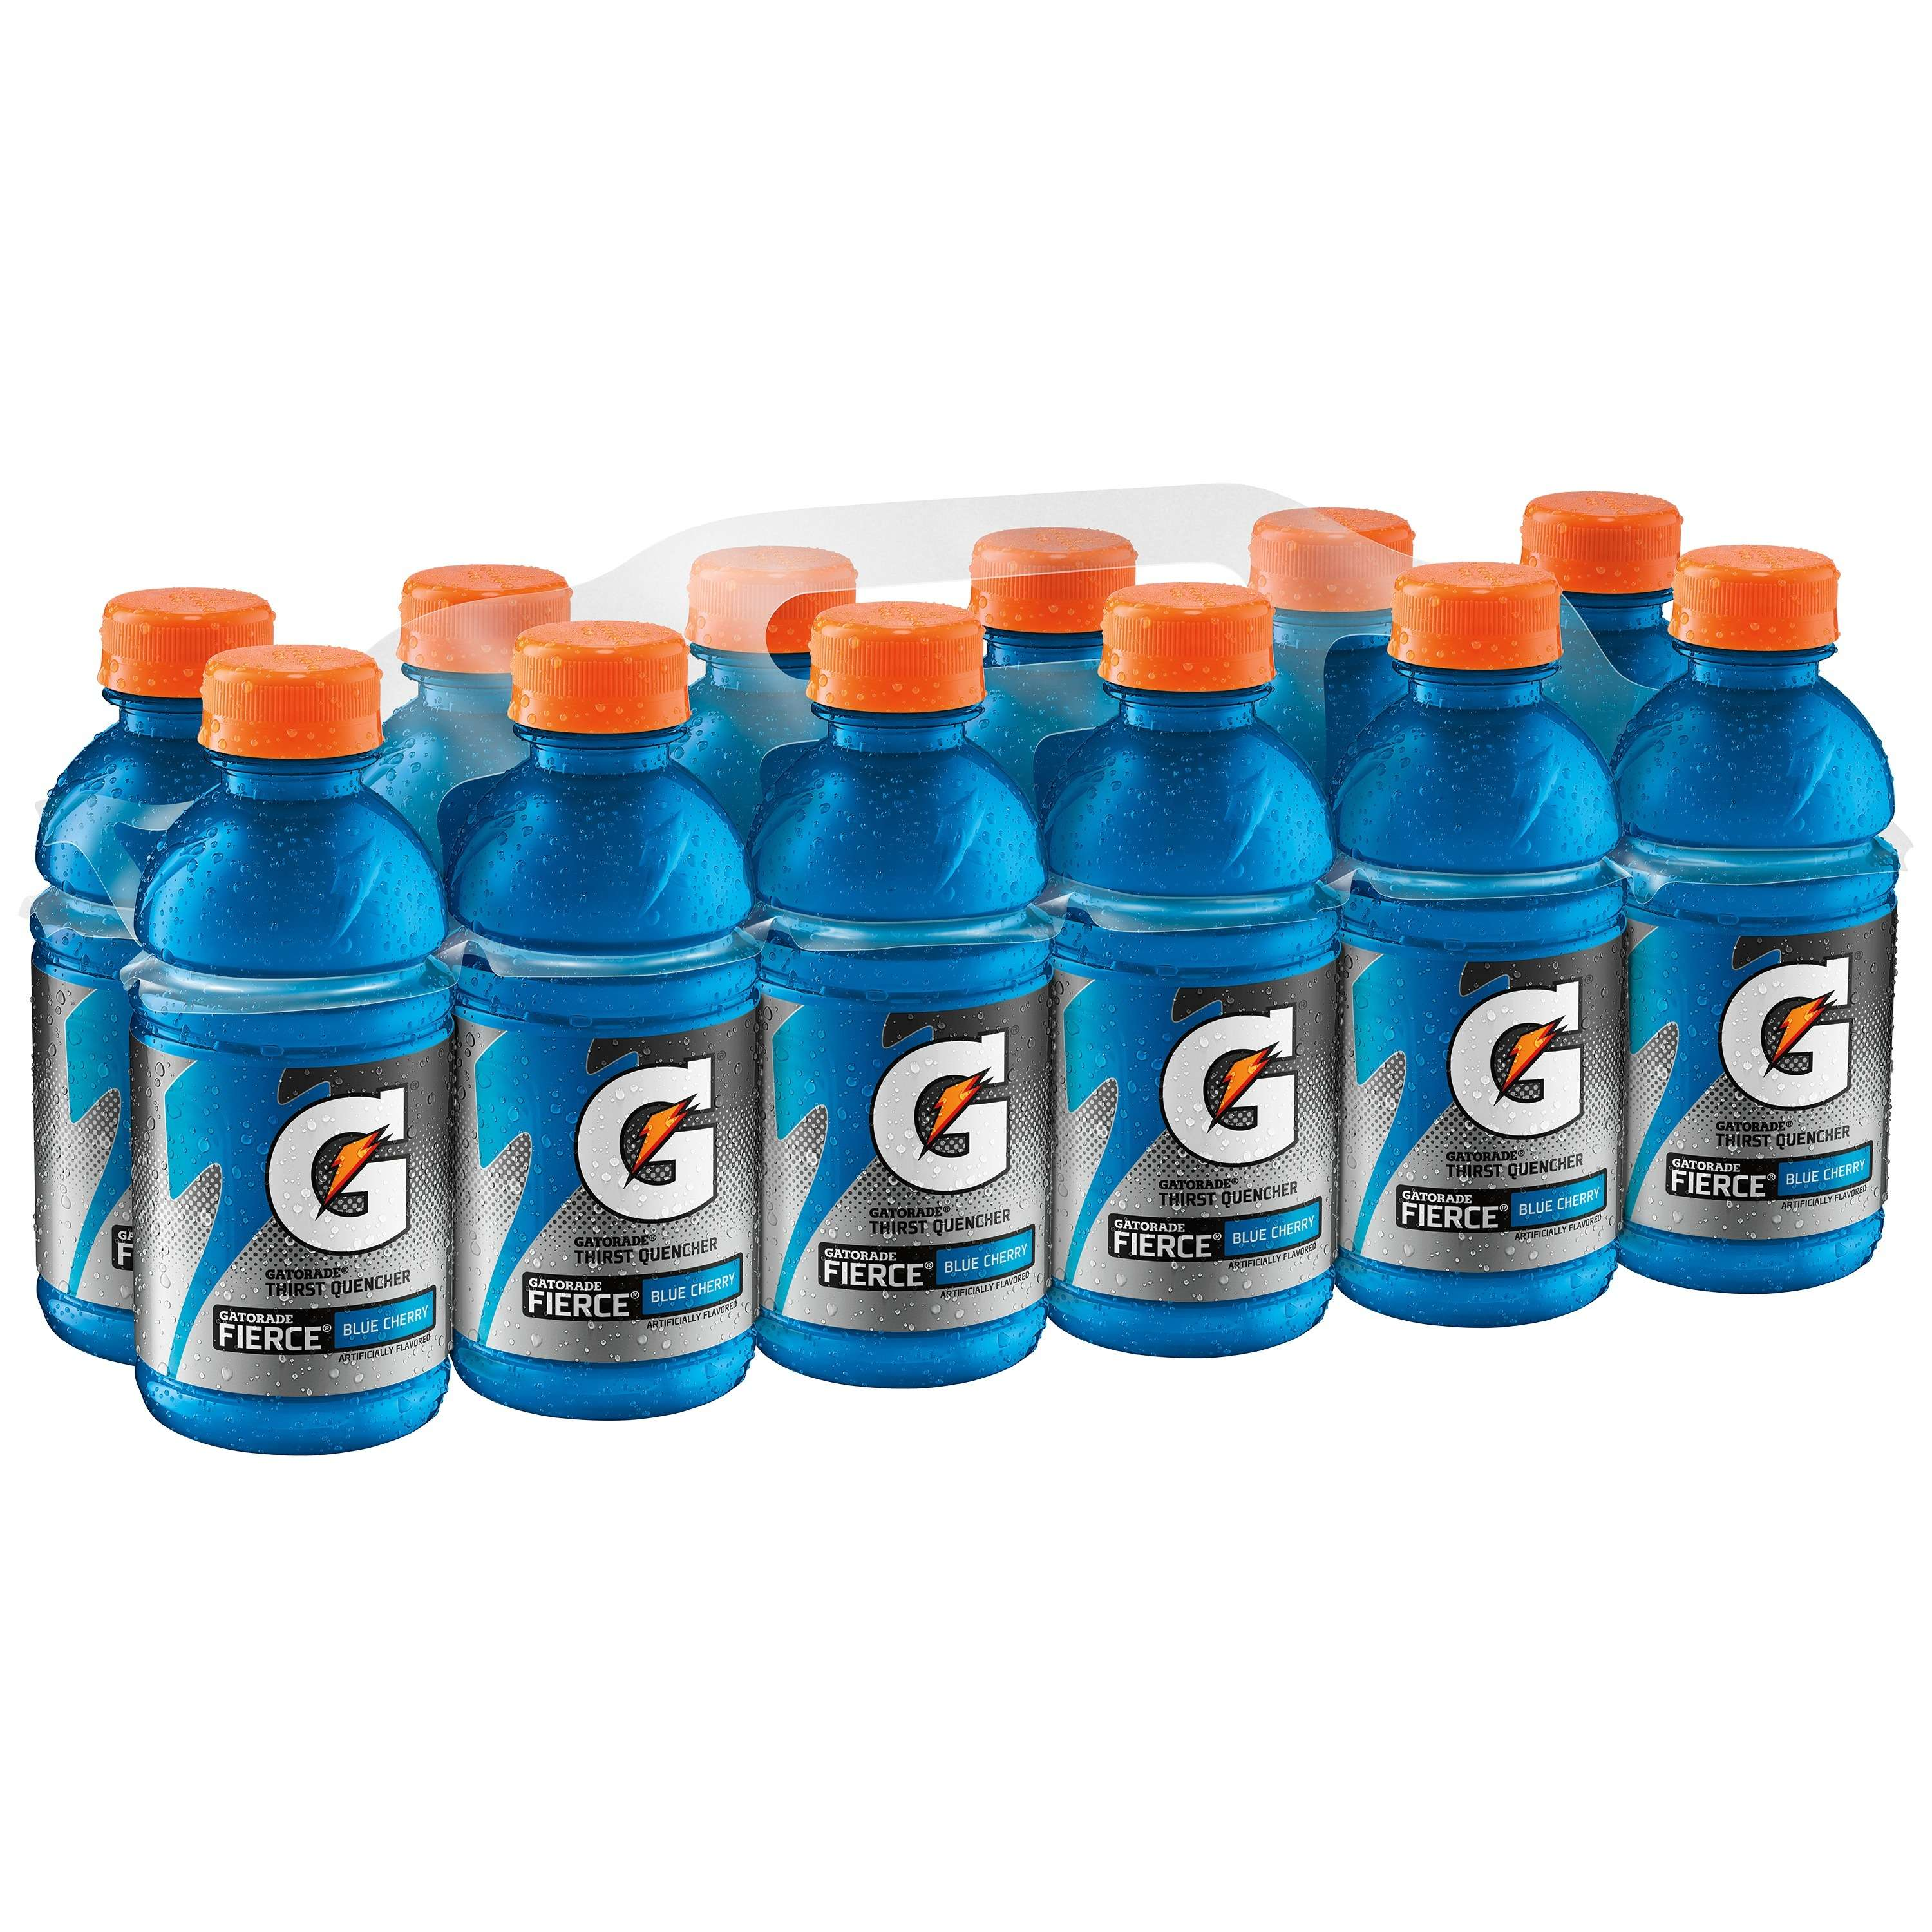 Gatorade Thirst Quencher Fierce Sports Drink, Blue Cherry, 12 Fl Oz, 12 Count